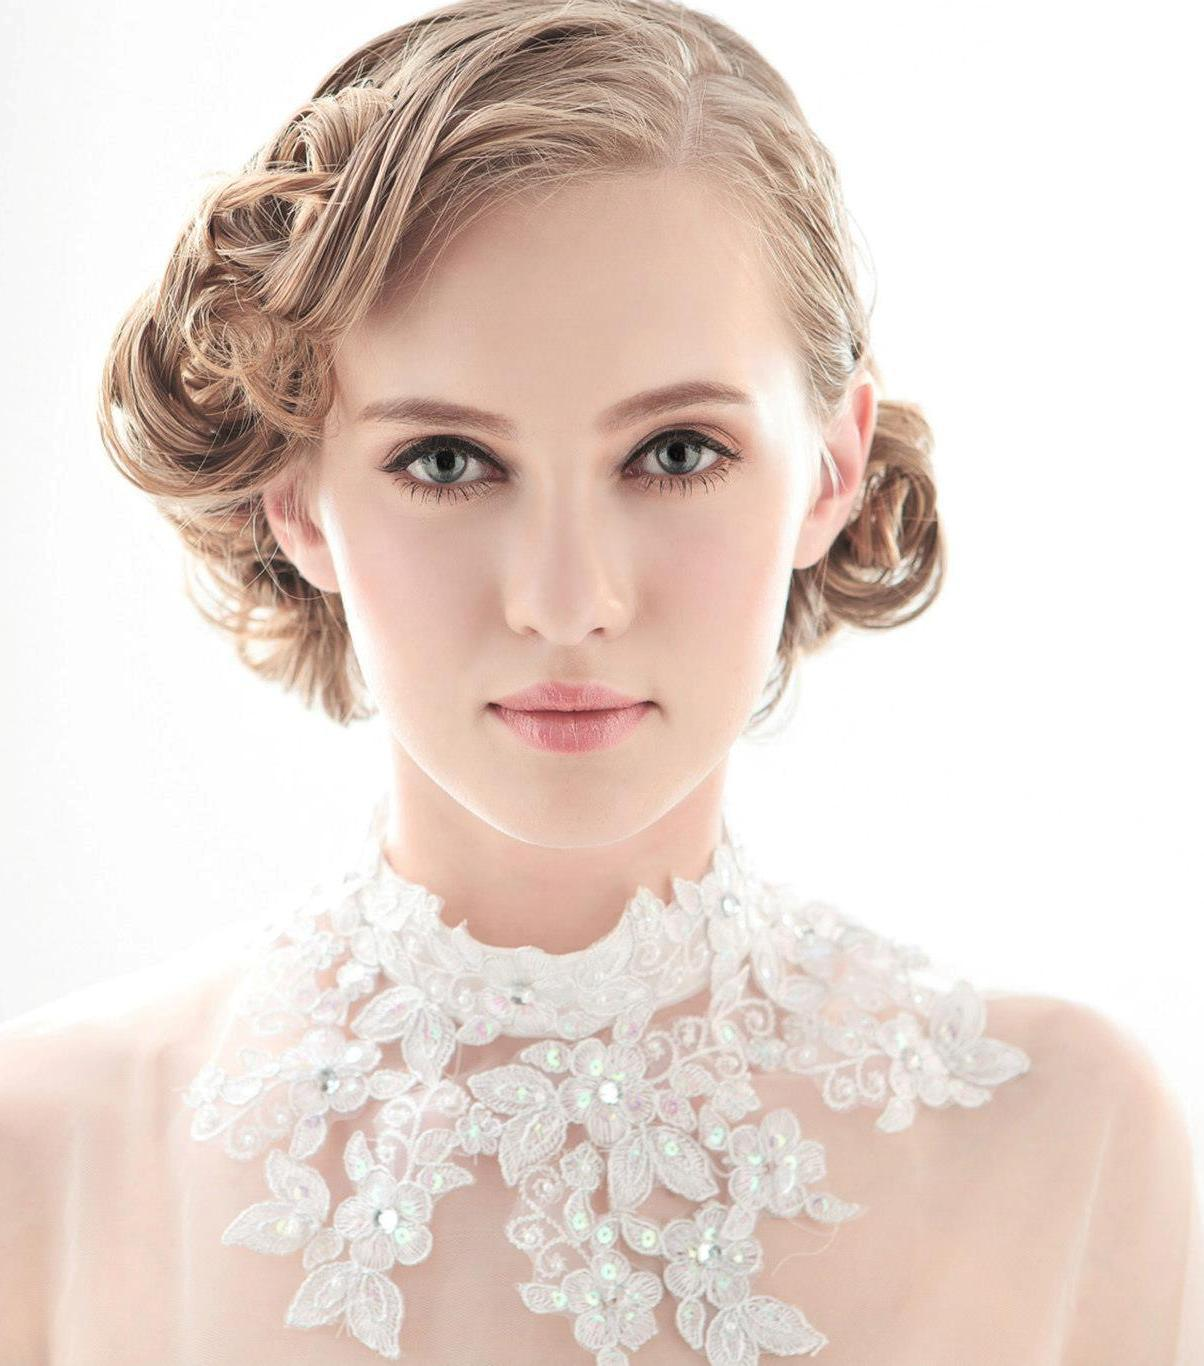 Wedding Hairstyle Photos: Vintage Wedding Hairstyles Images Photos Pictures